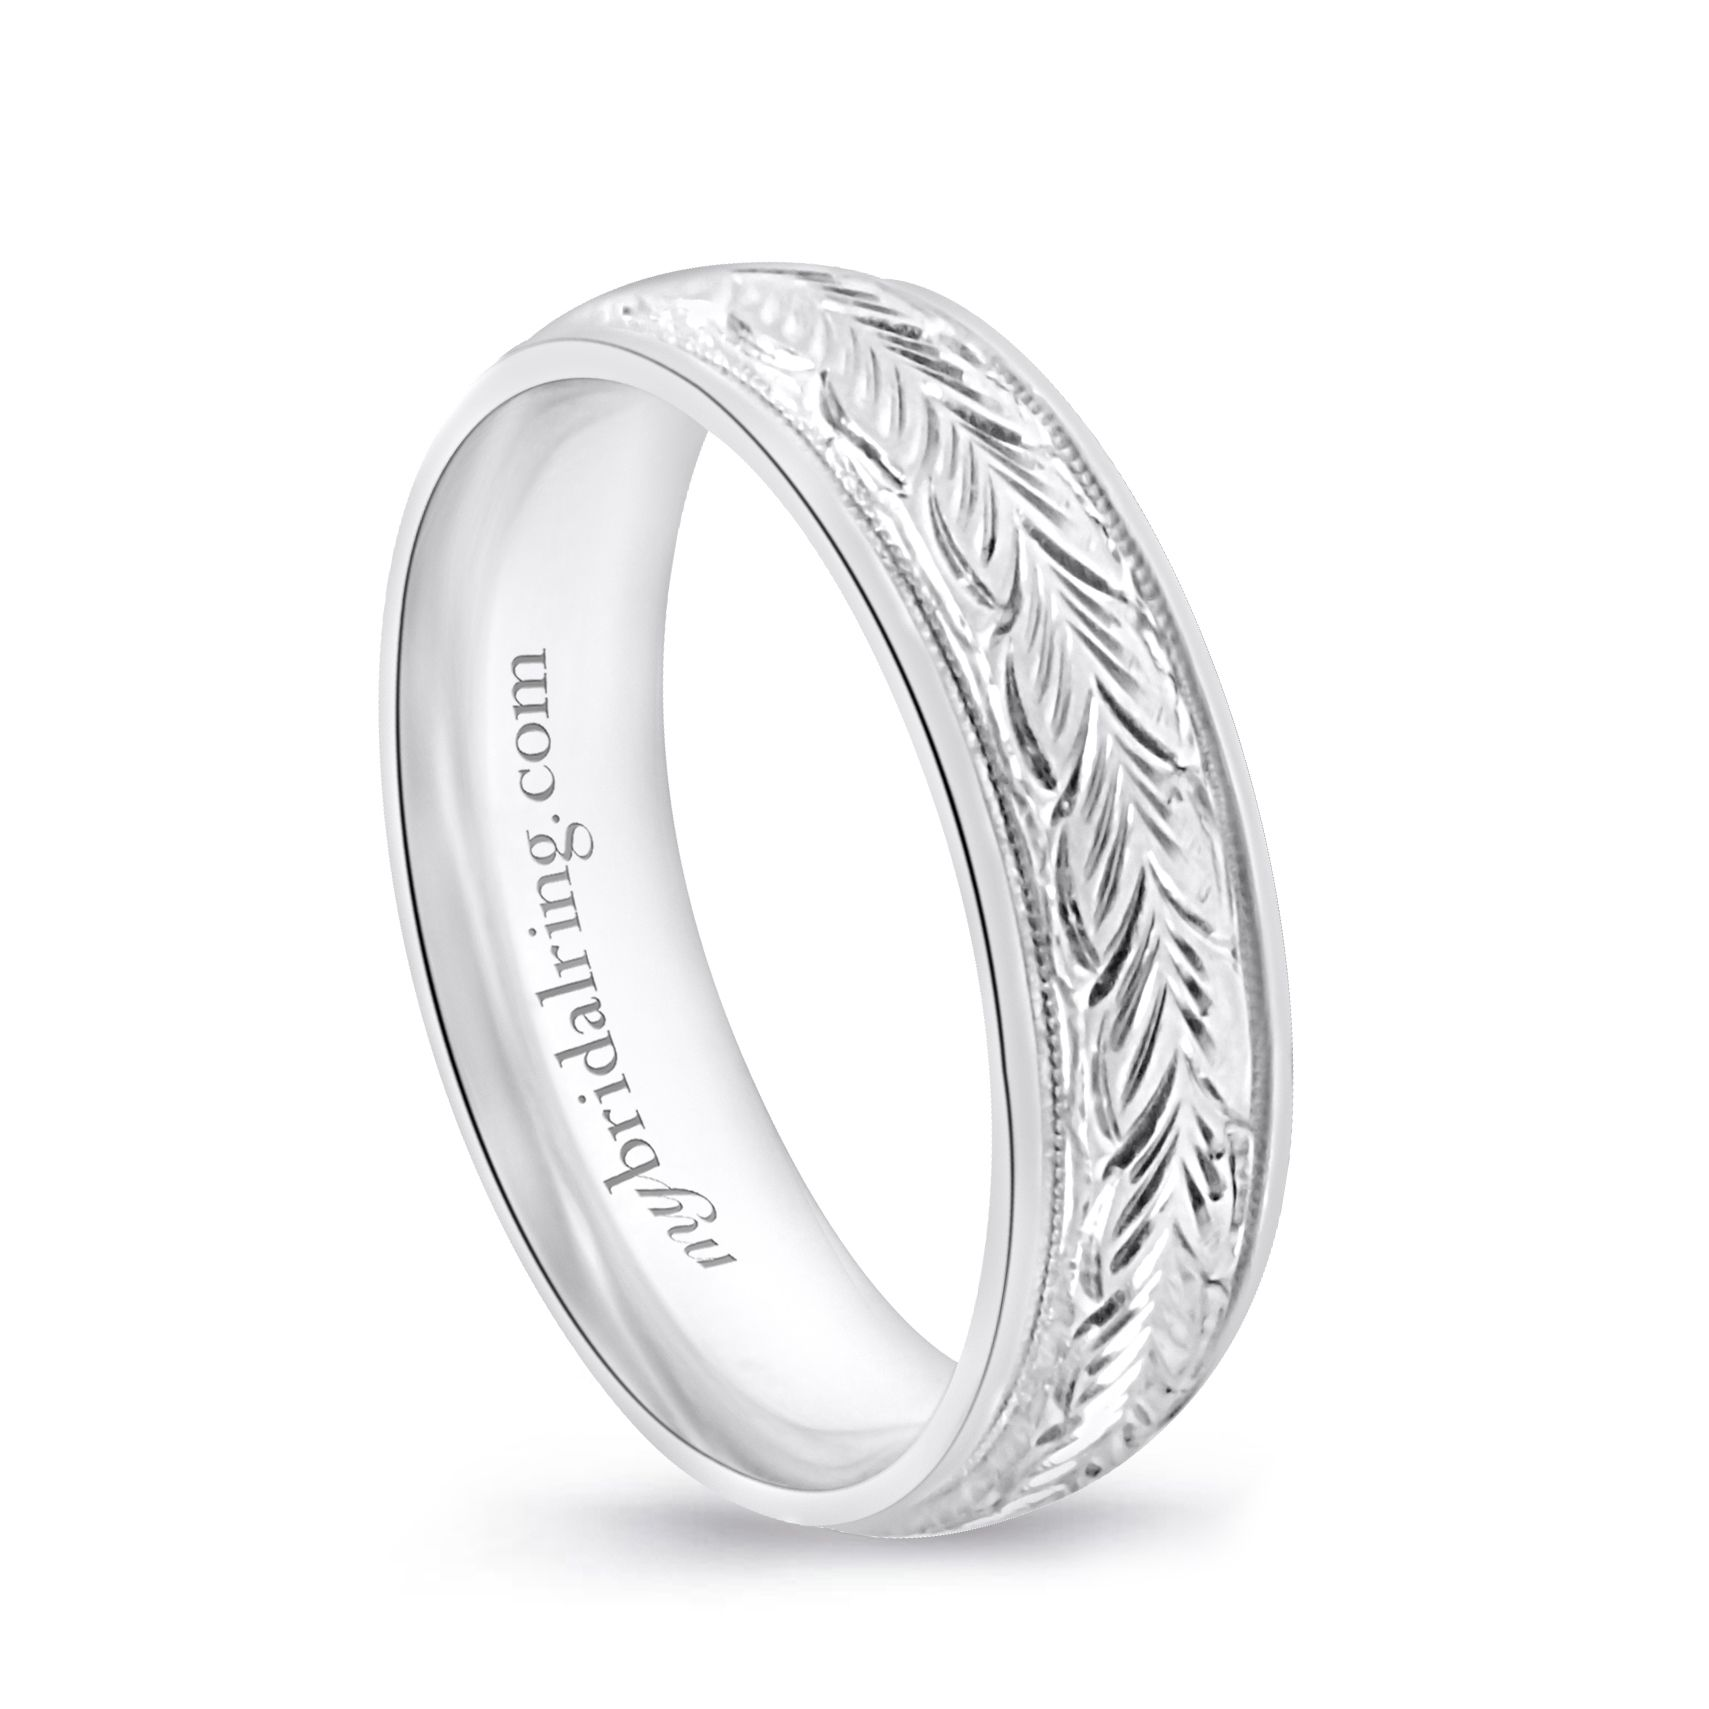 Hand Engraved Mens Wedding Band In 14k White Gold Mens Wedding Bands Mens Engraved Wedding Bands Wedding Bands